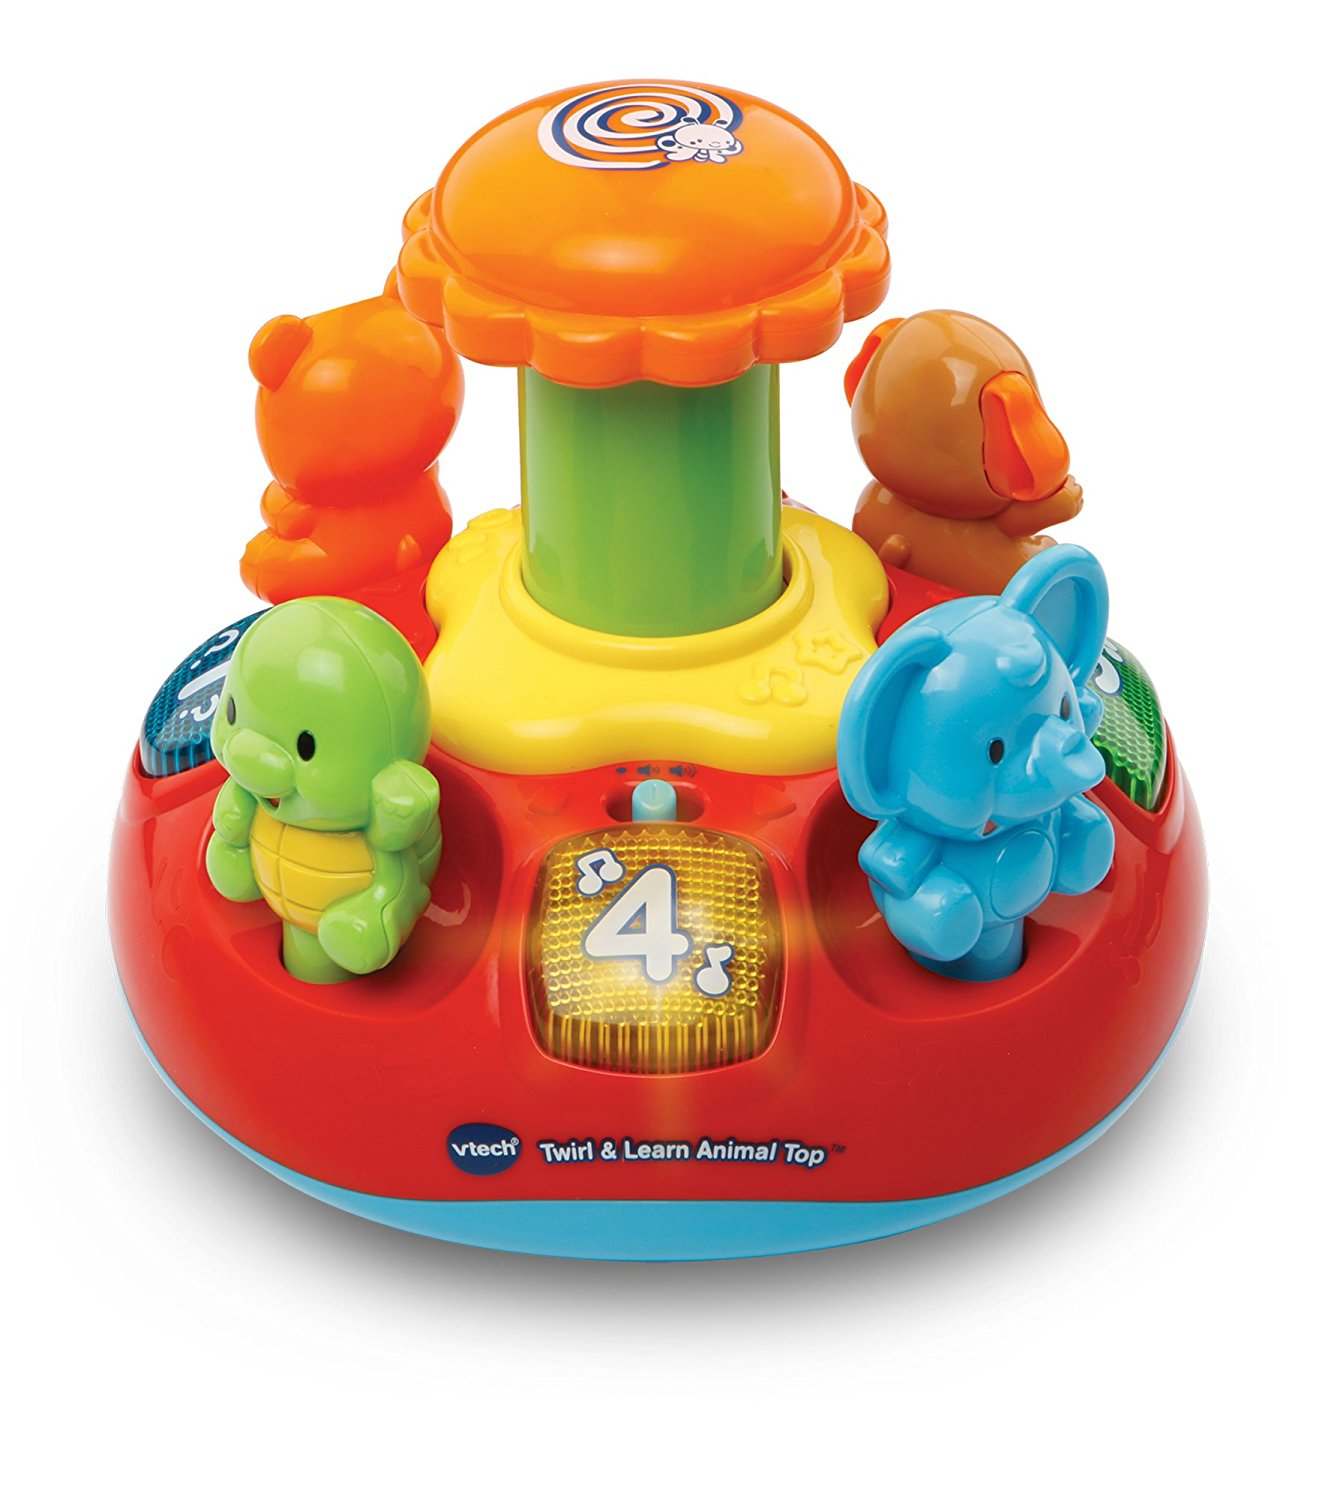 VTech Baby Push and Play Spinning Top Toy - Multi-Coloured: VTech ...